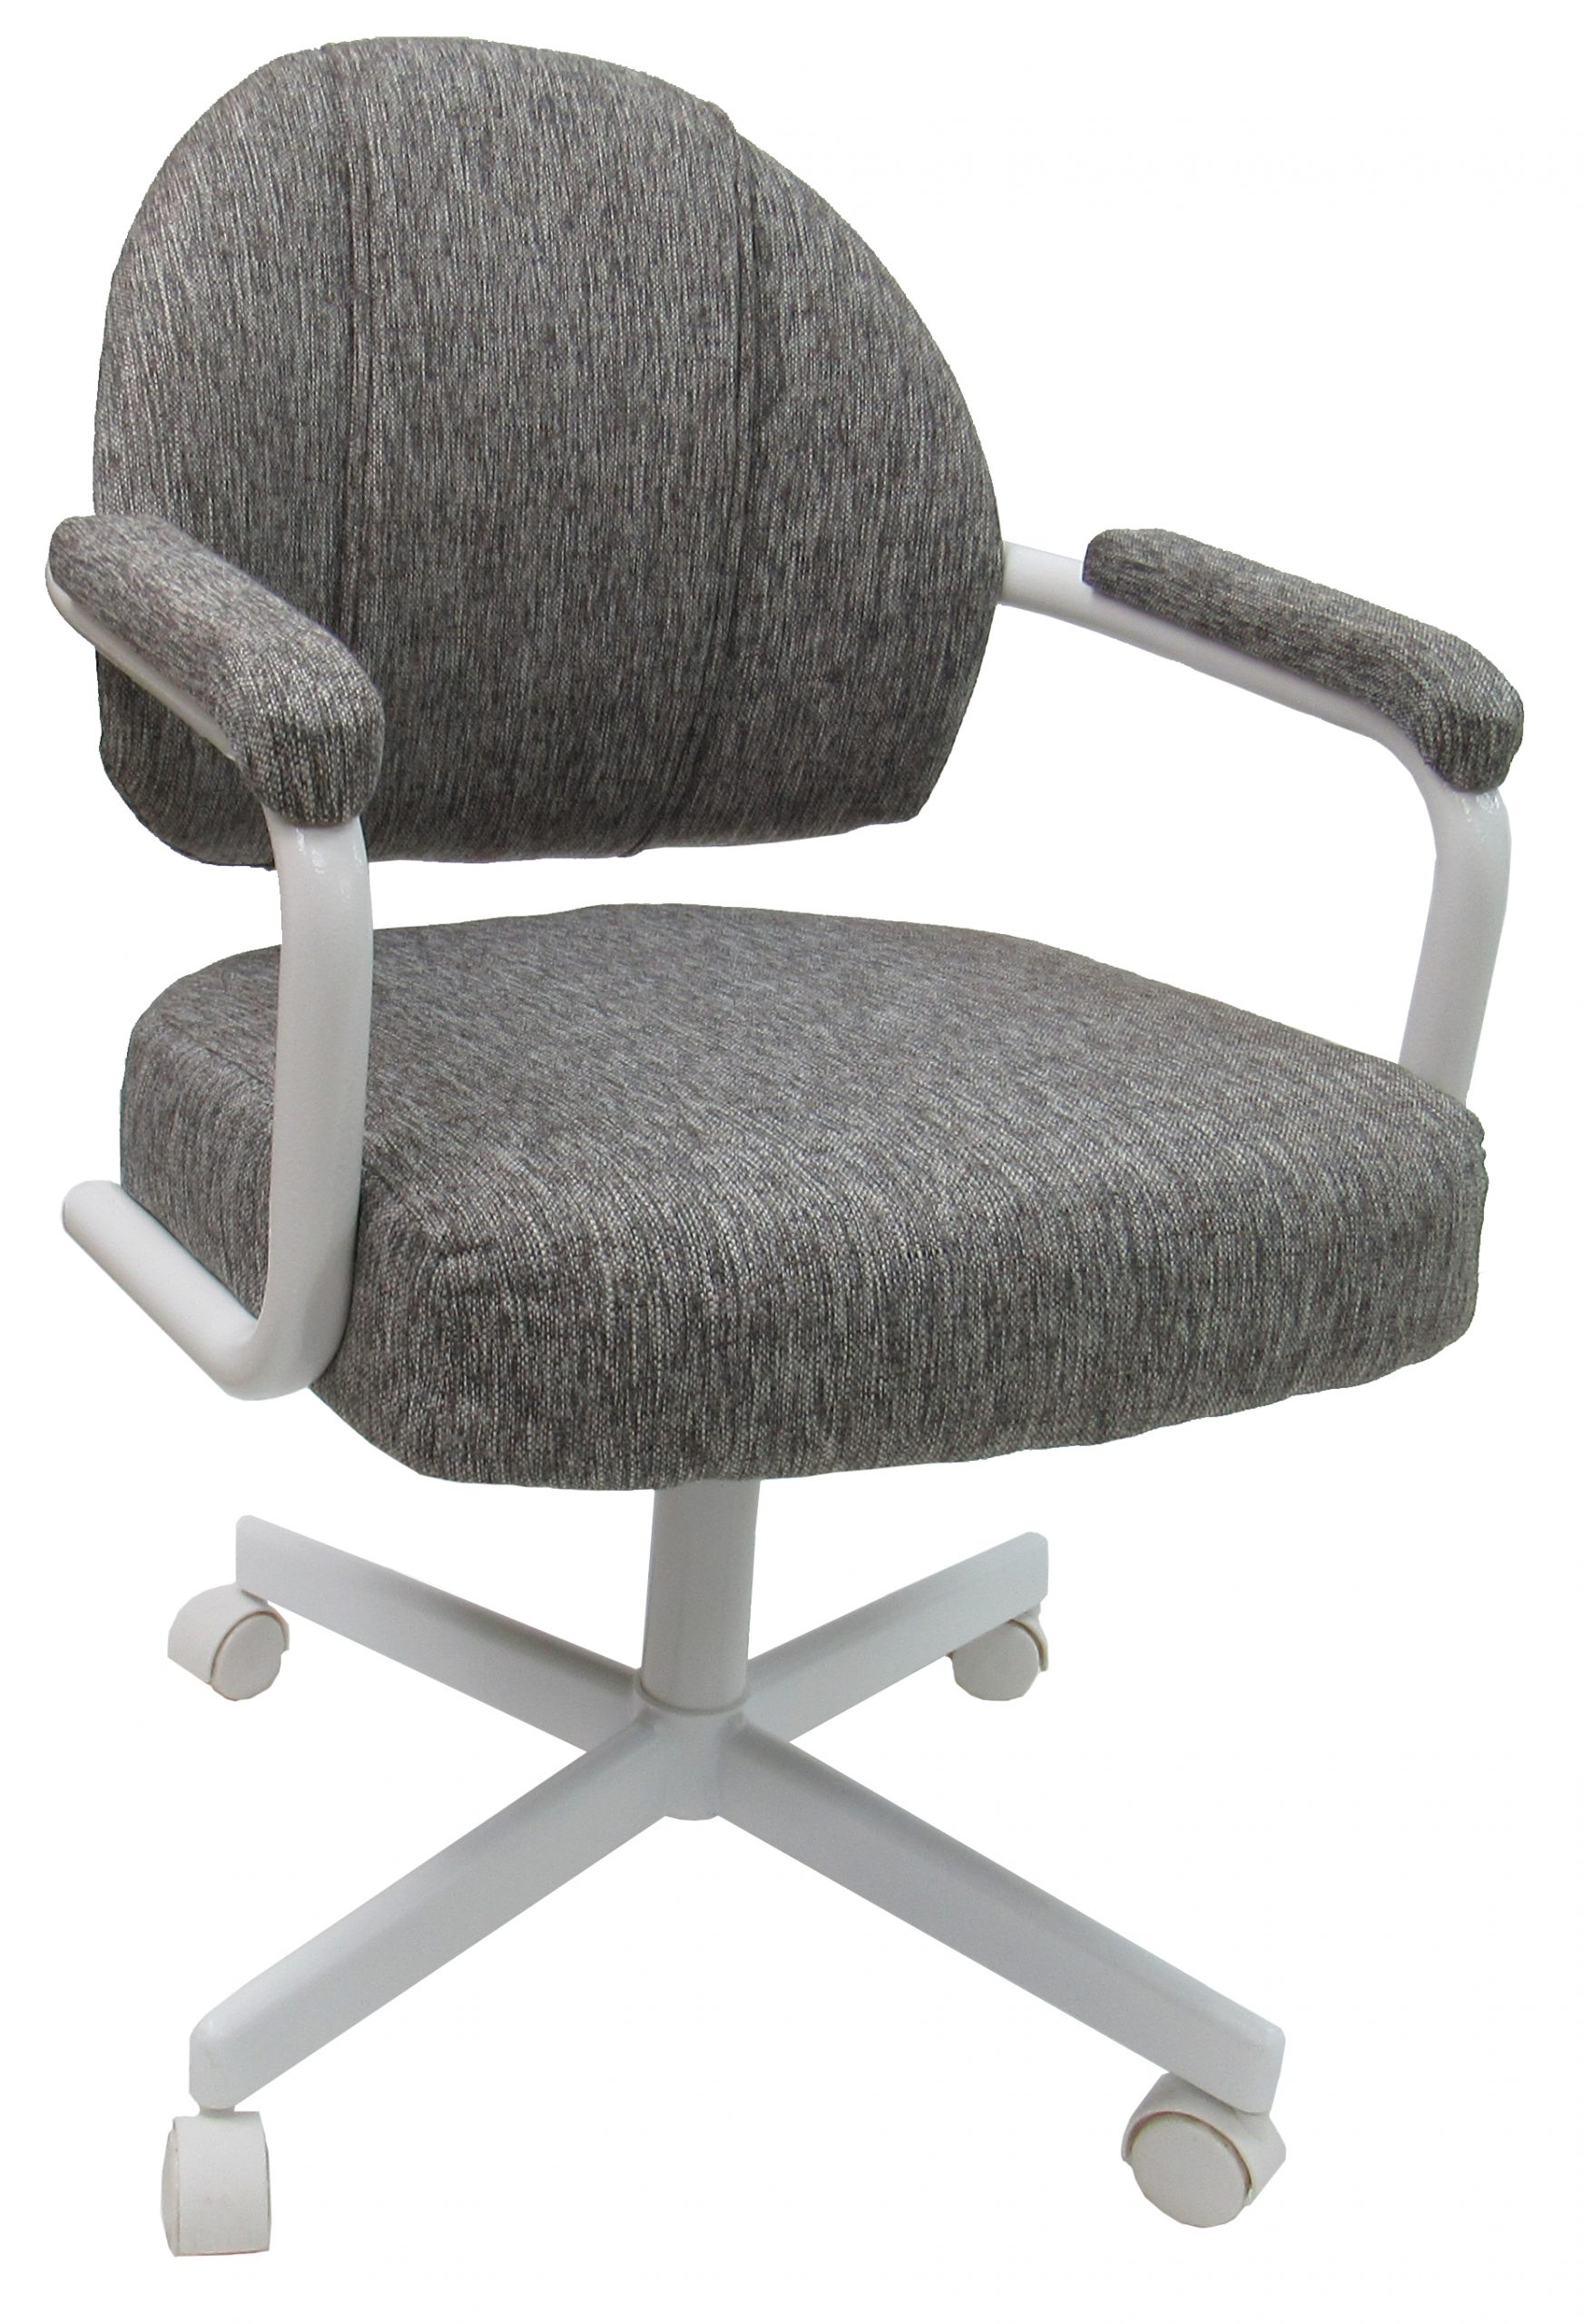 Swivel Caster Dining Chair on Wheels - M70 - Alfa Dinettes